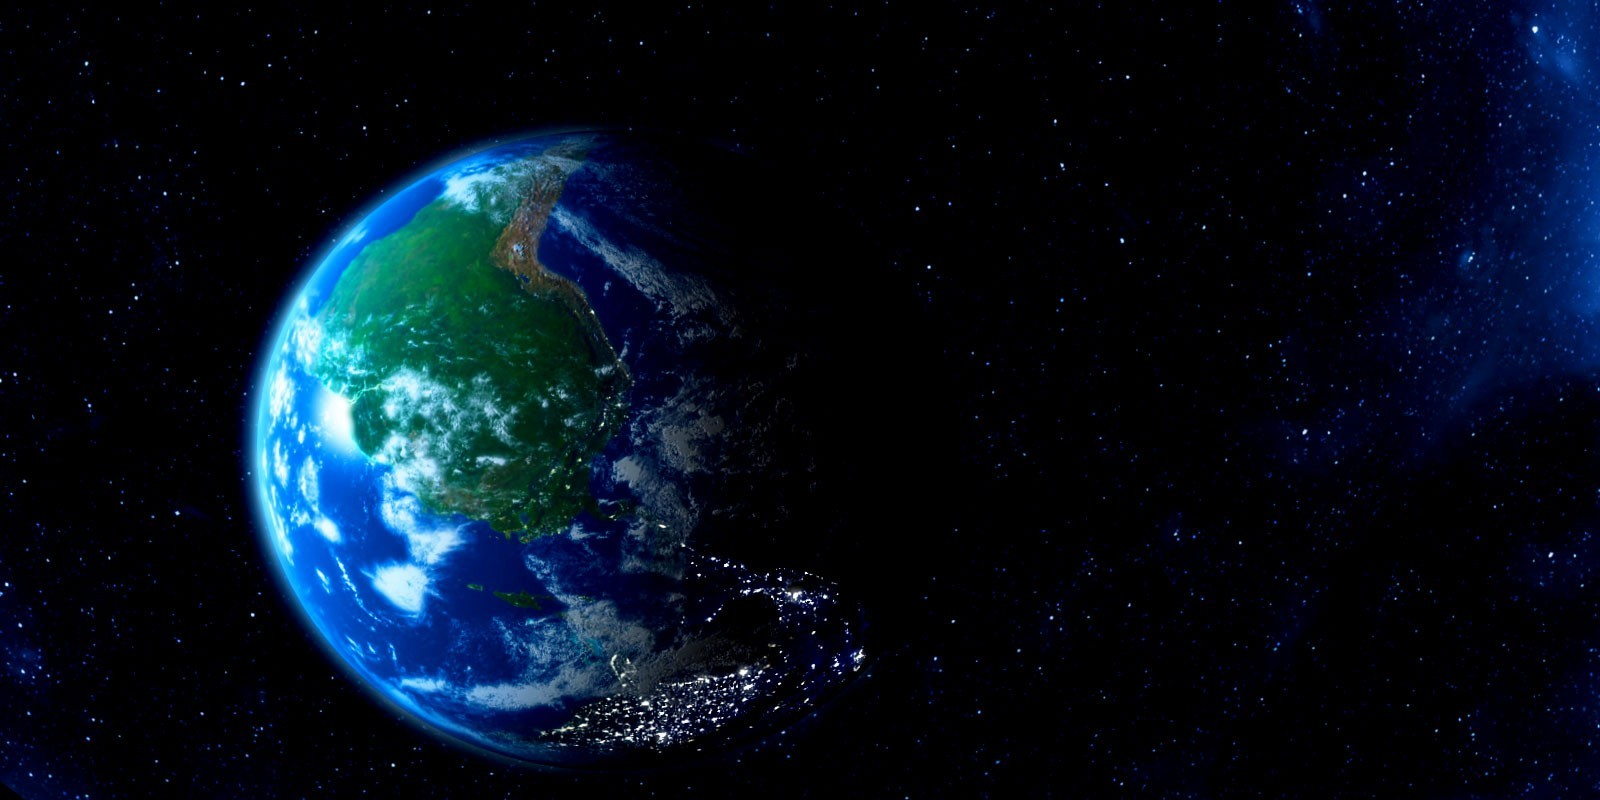 special characteristics of planet earth which make it suitable for sustaining life Have environments suitable for life,  the planet earth that make it unique in its ability to  characteristics that make life possible on the .